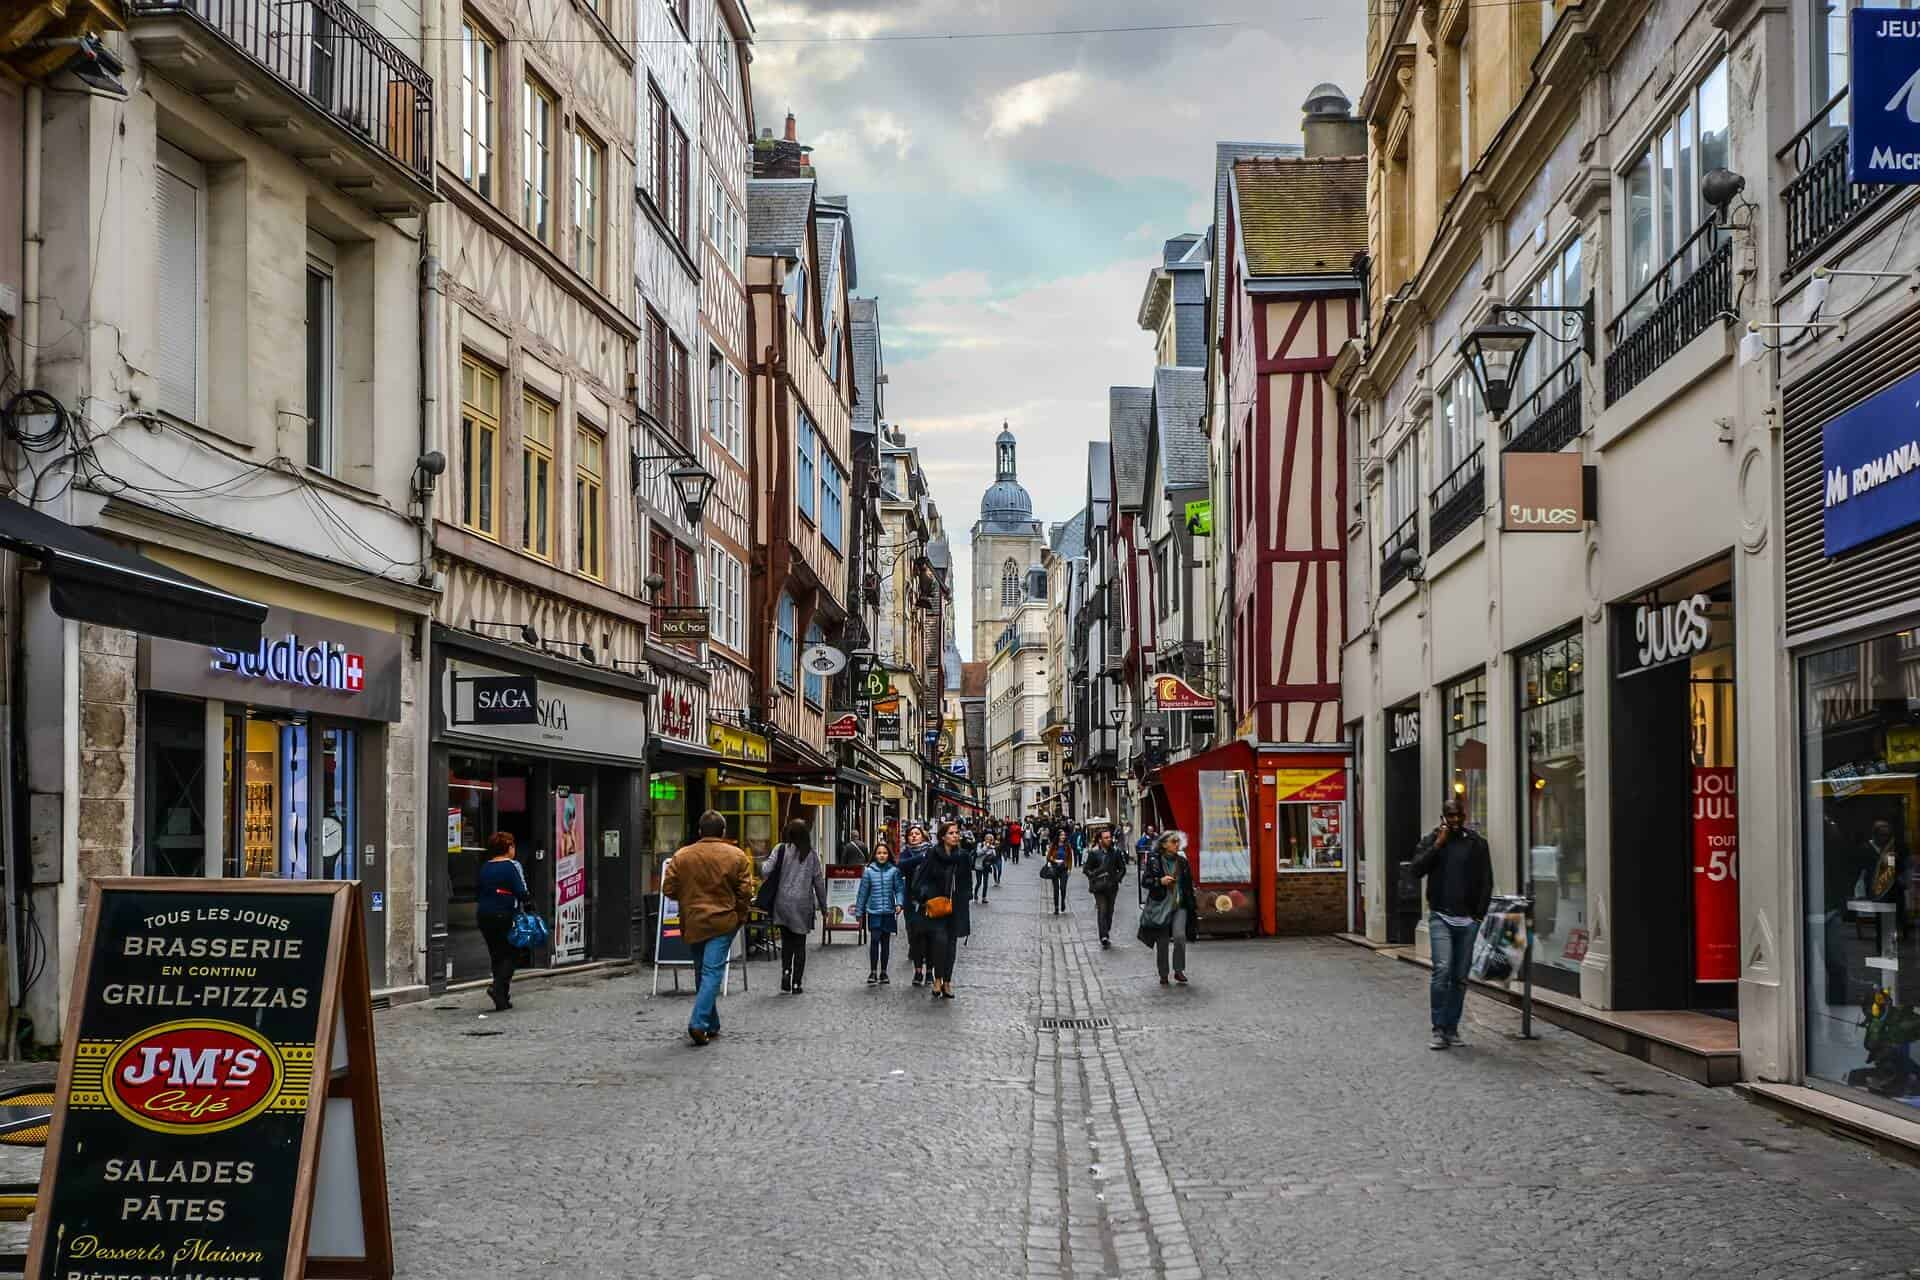 Looking for some day trips from Paris to make a quick escape from the hustle and bustle of the city? Check out 15 of the easiest day trips from Paris in our brand new guide! #france #paris #daytrips #europe #travel